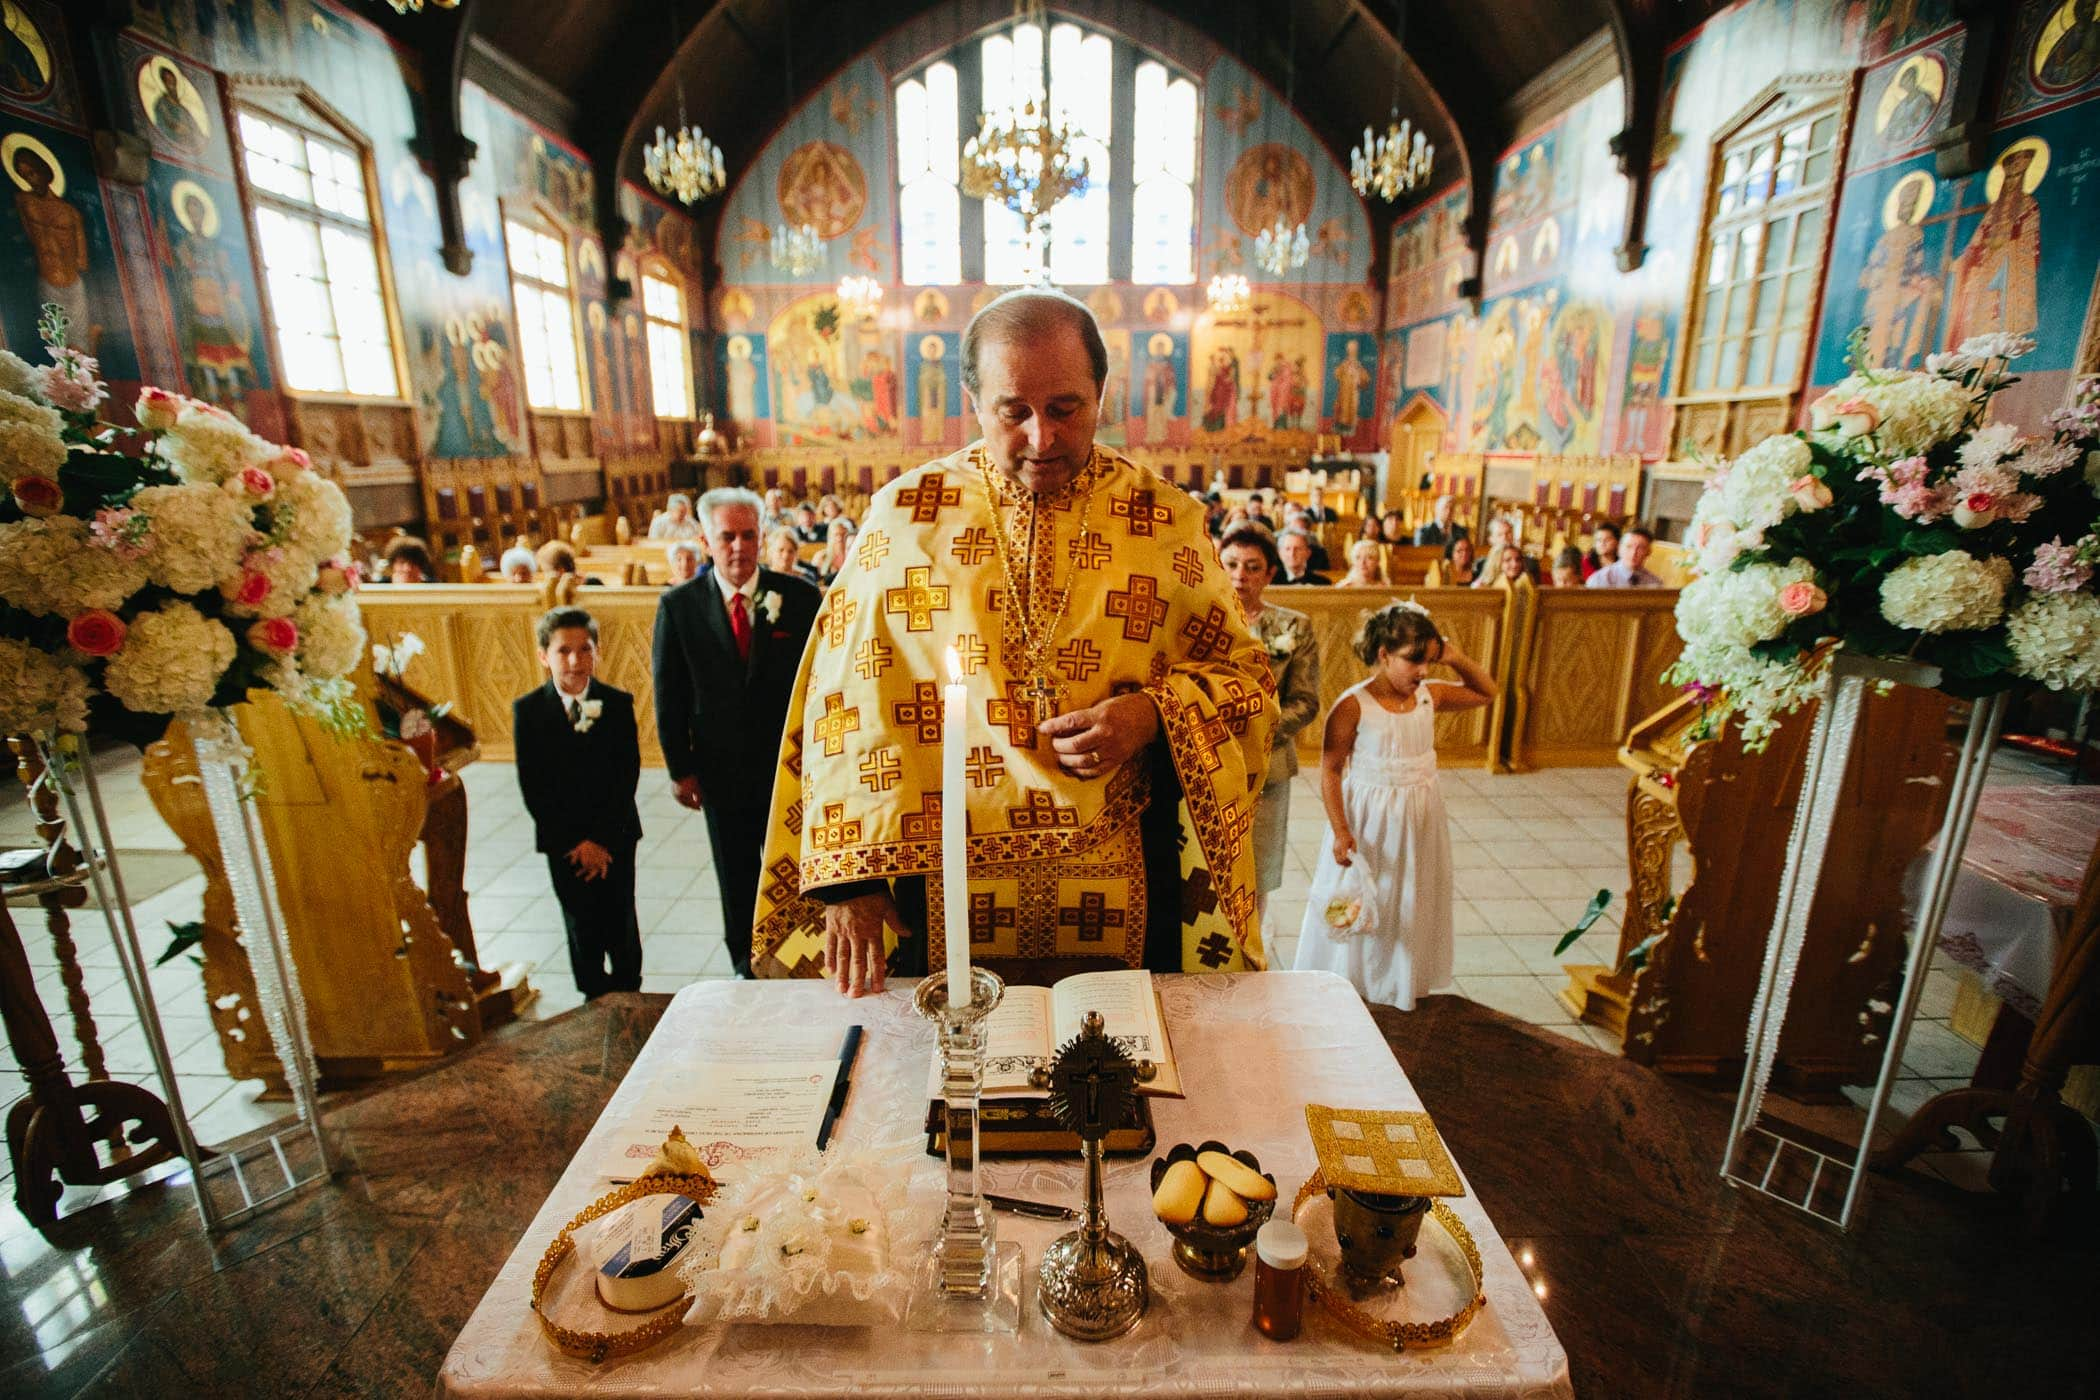 The priest with hand on altar inside saint george romanian orthodox church wedding ceremony by photojournalistic wedding photographer Pavel Kounine